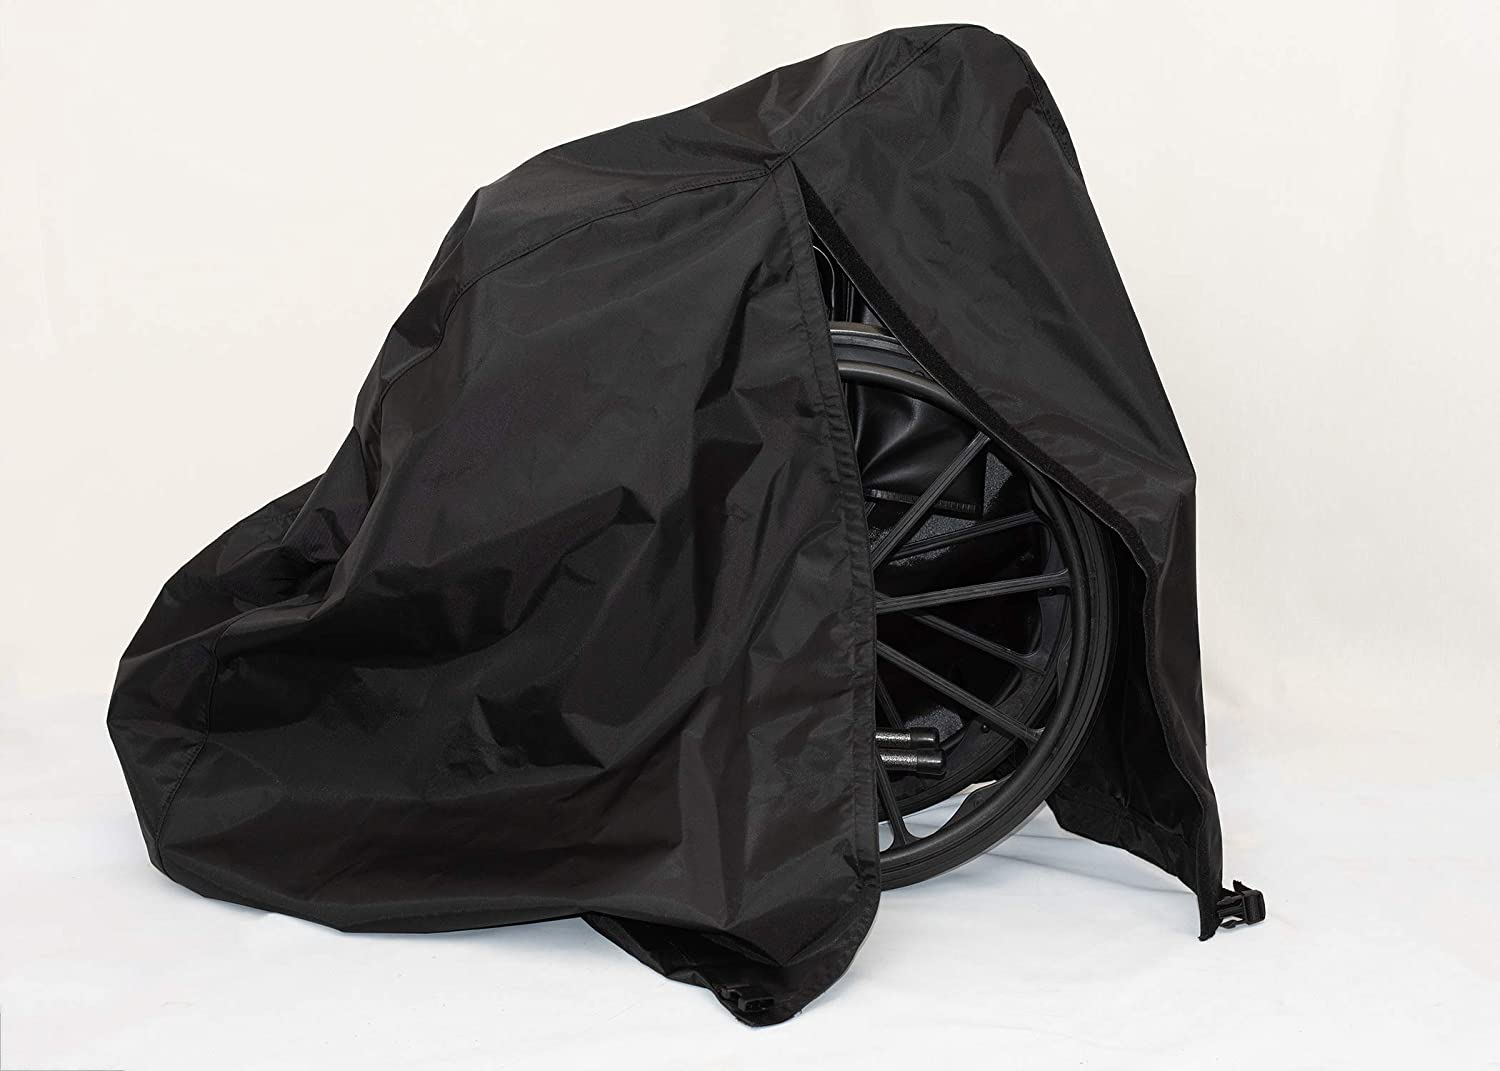 Diestco Manual Wheelchair Cover Accessory Durable Black Lightweight Nylon 71H4Mvt0-pL